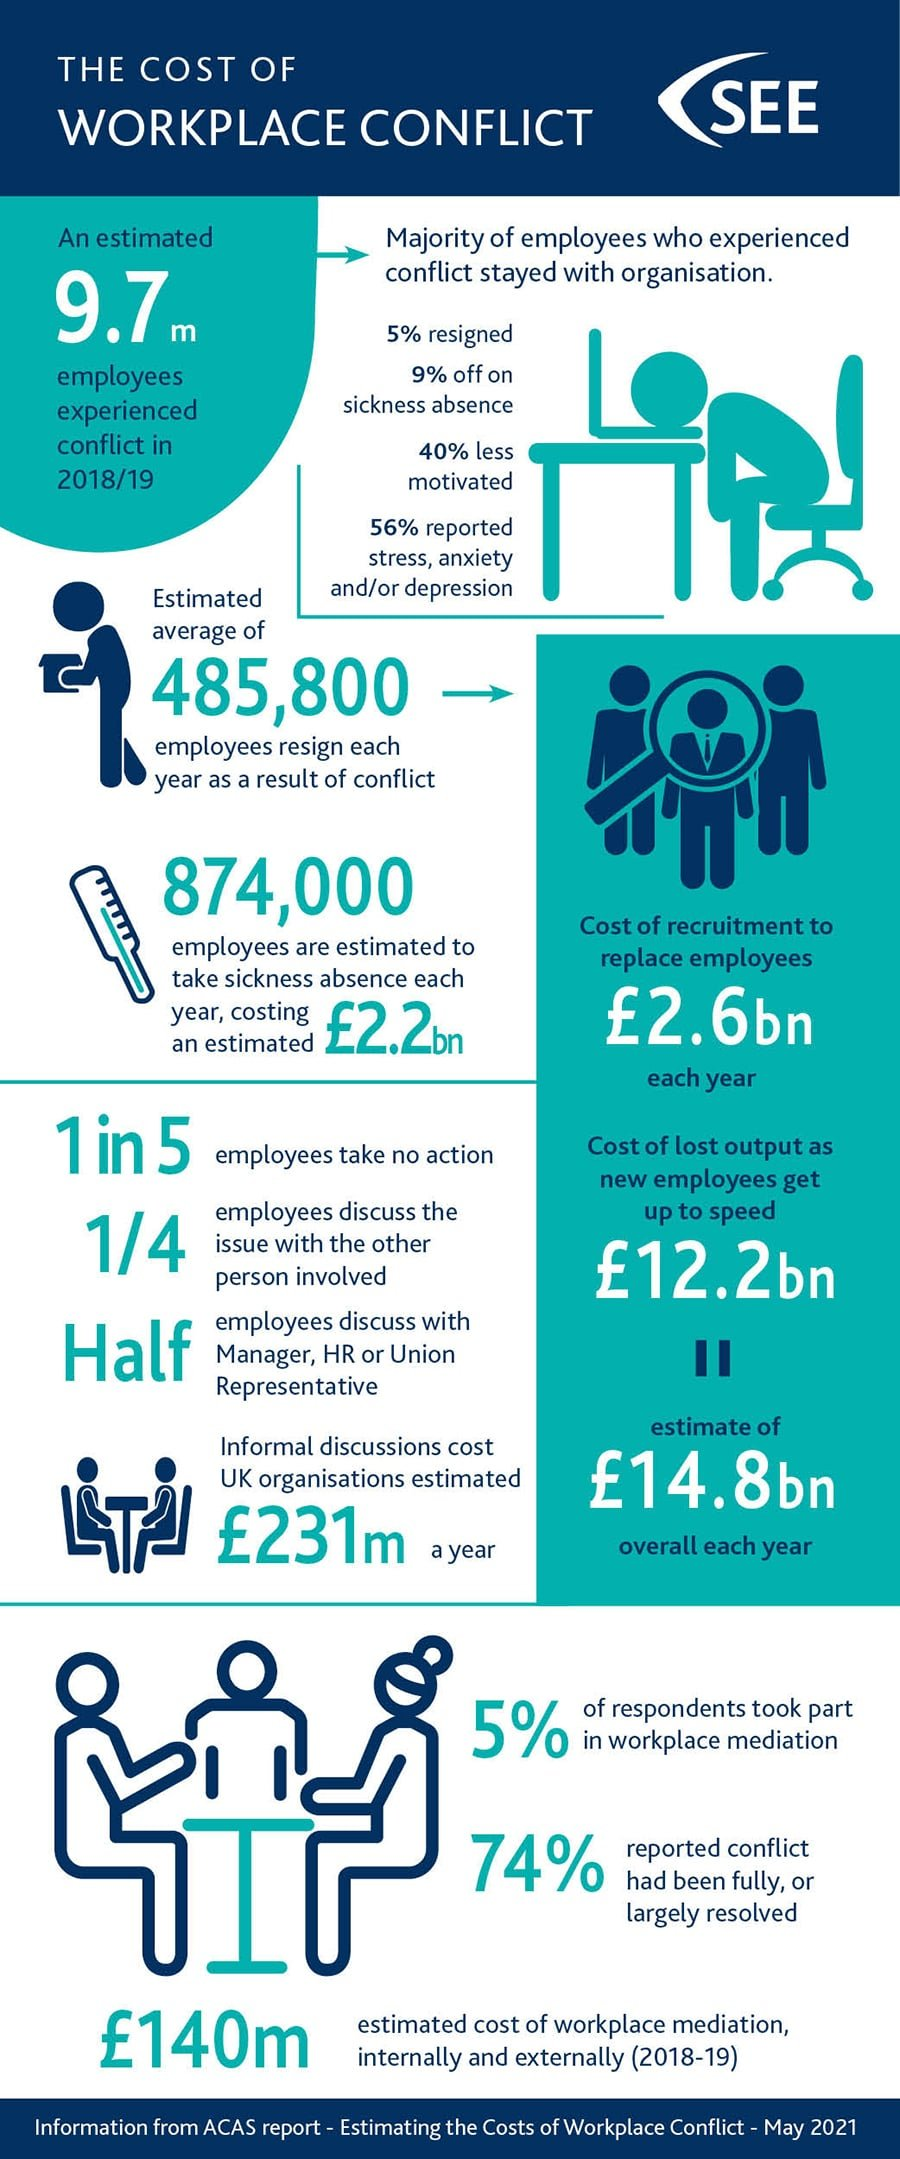 An infographic displaying cost of workplace conflict